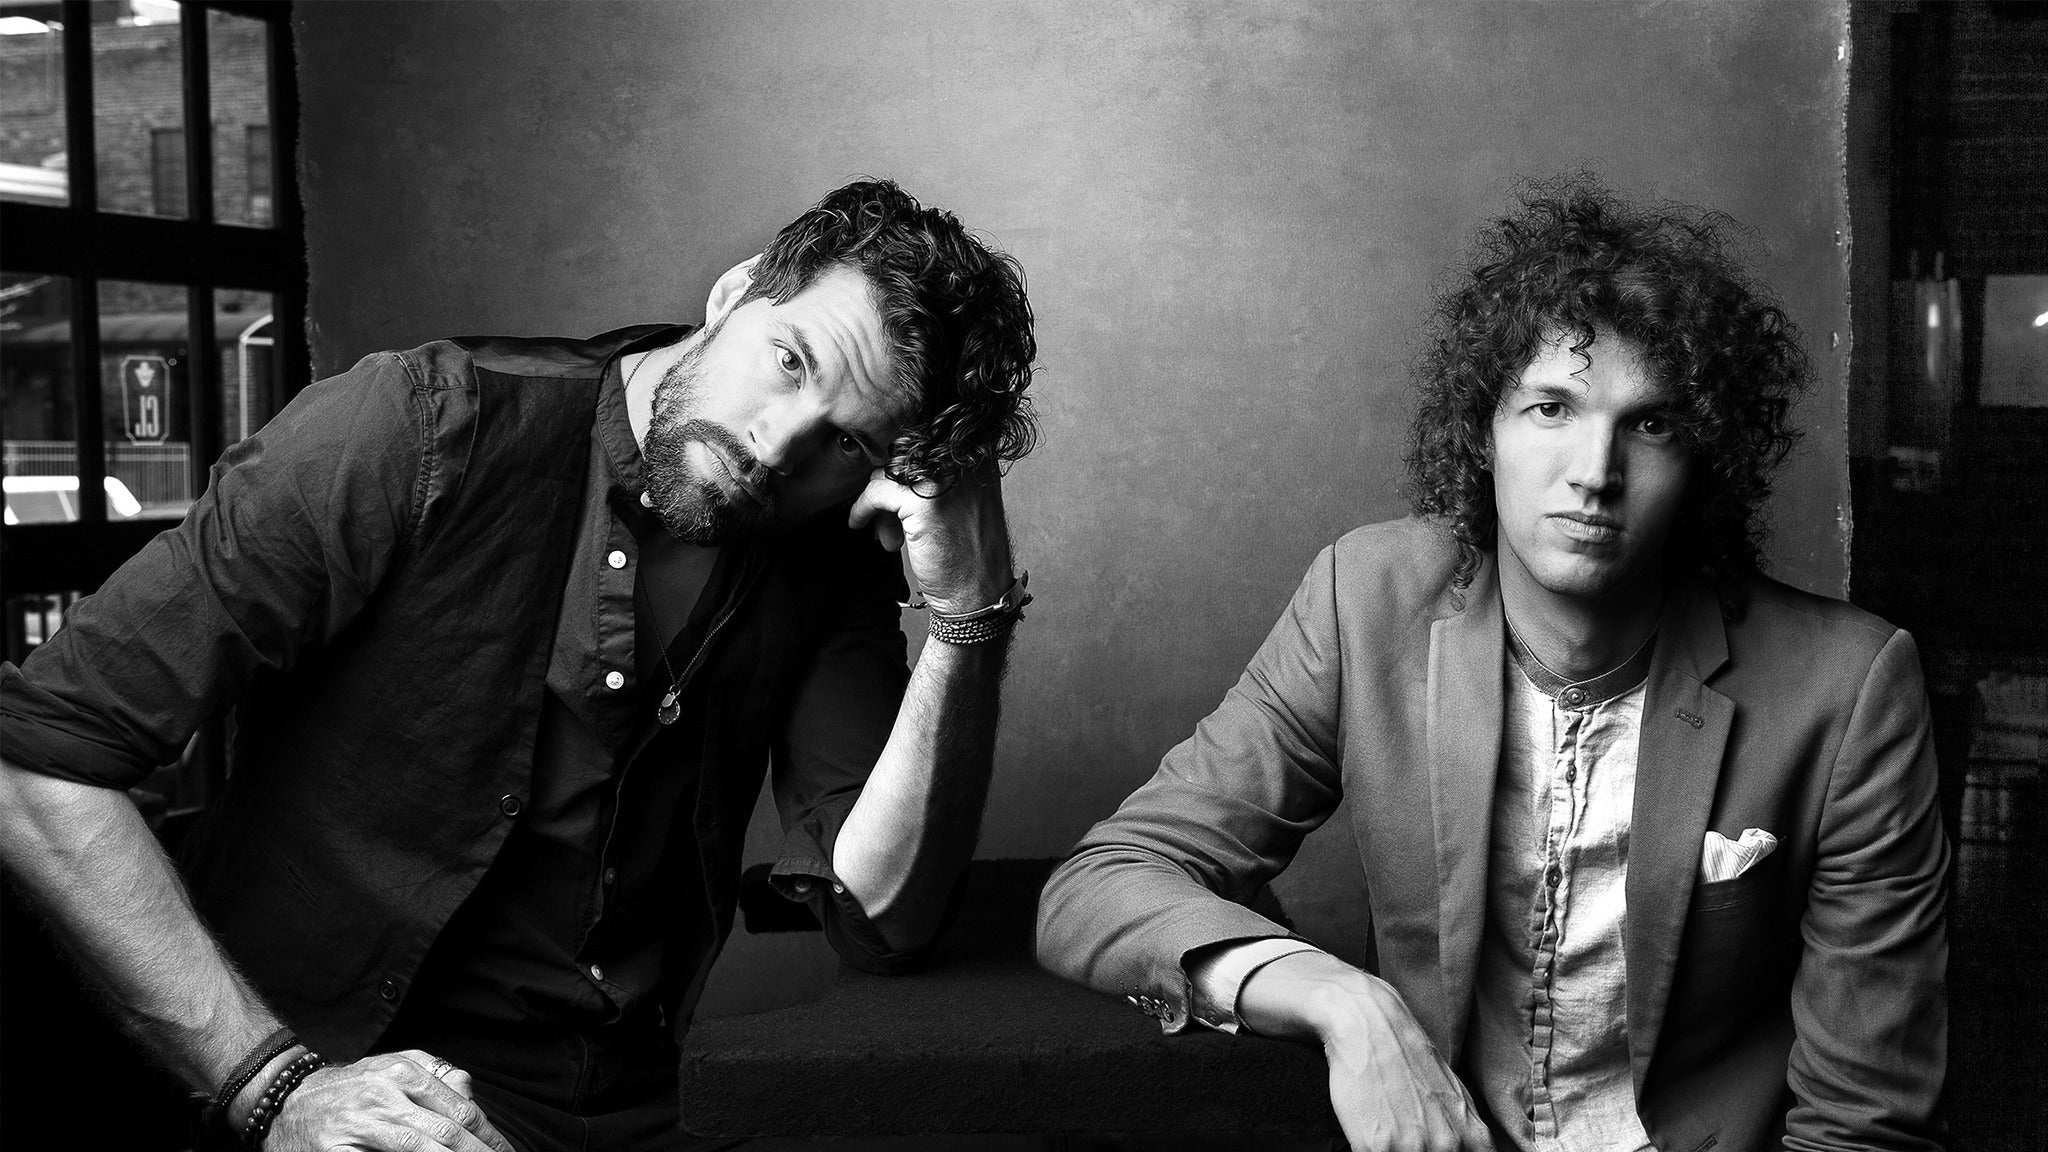 88.1 WAY-FM Presents: for KING & COUNTRY Little Drummer Boy